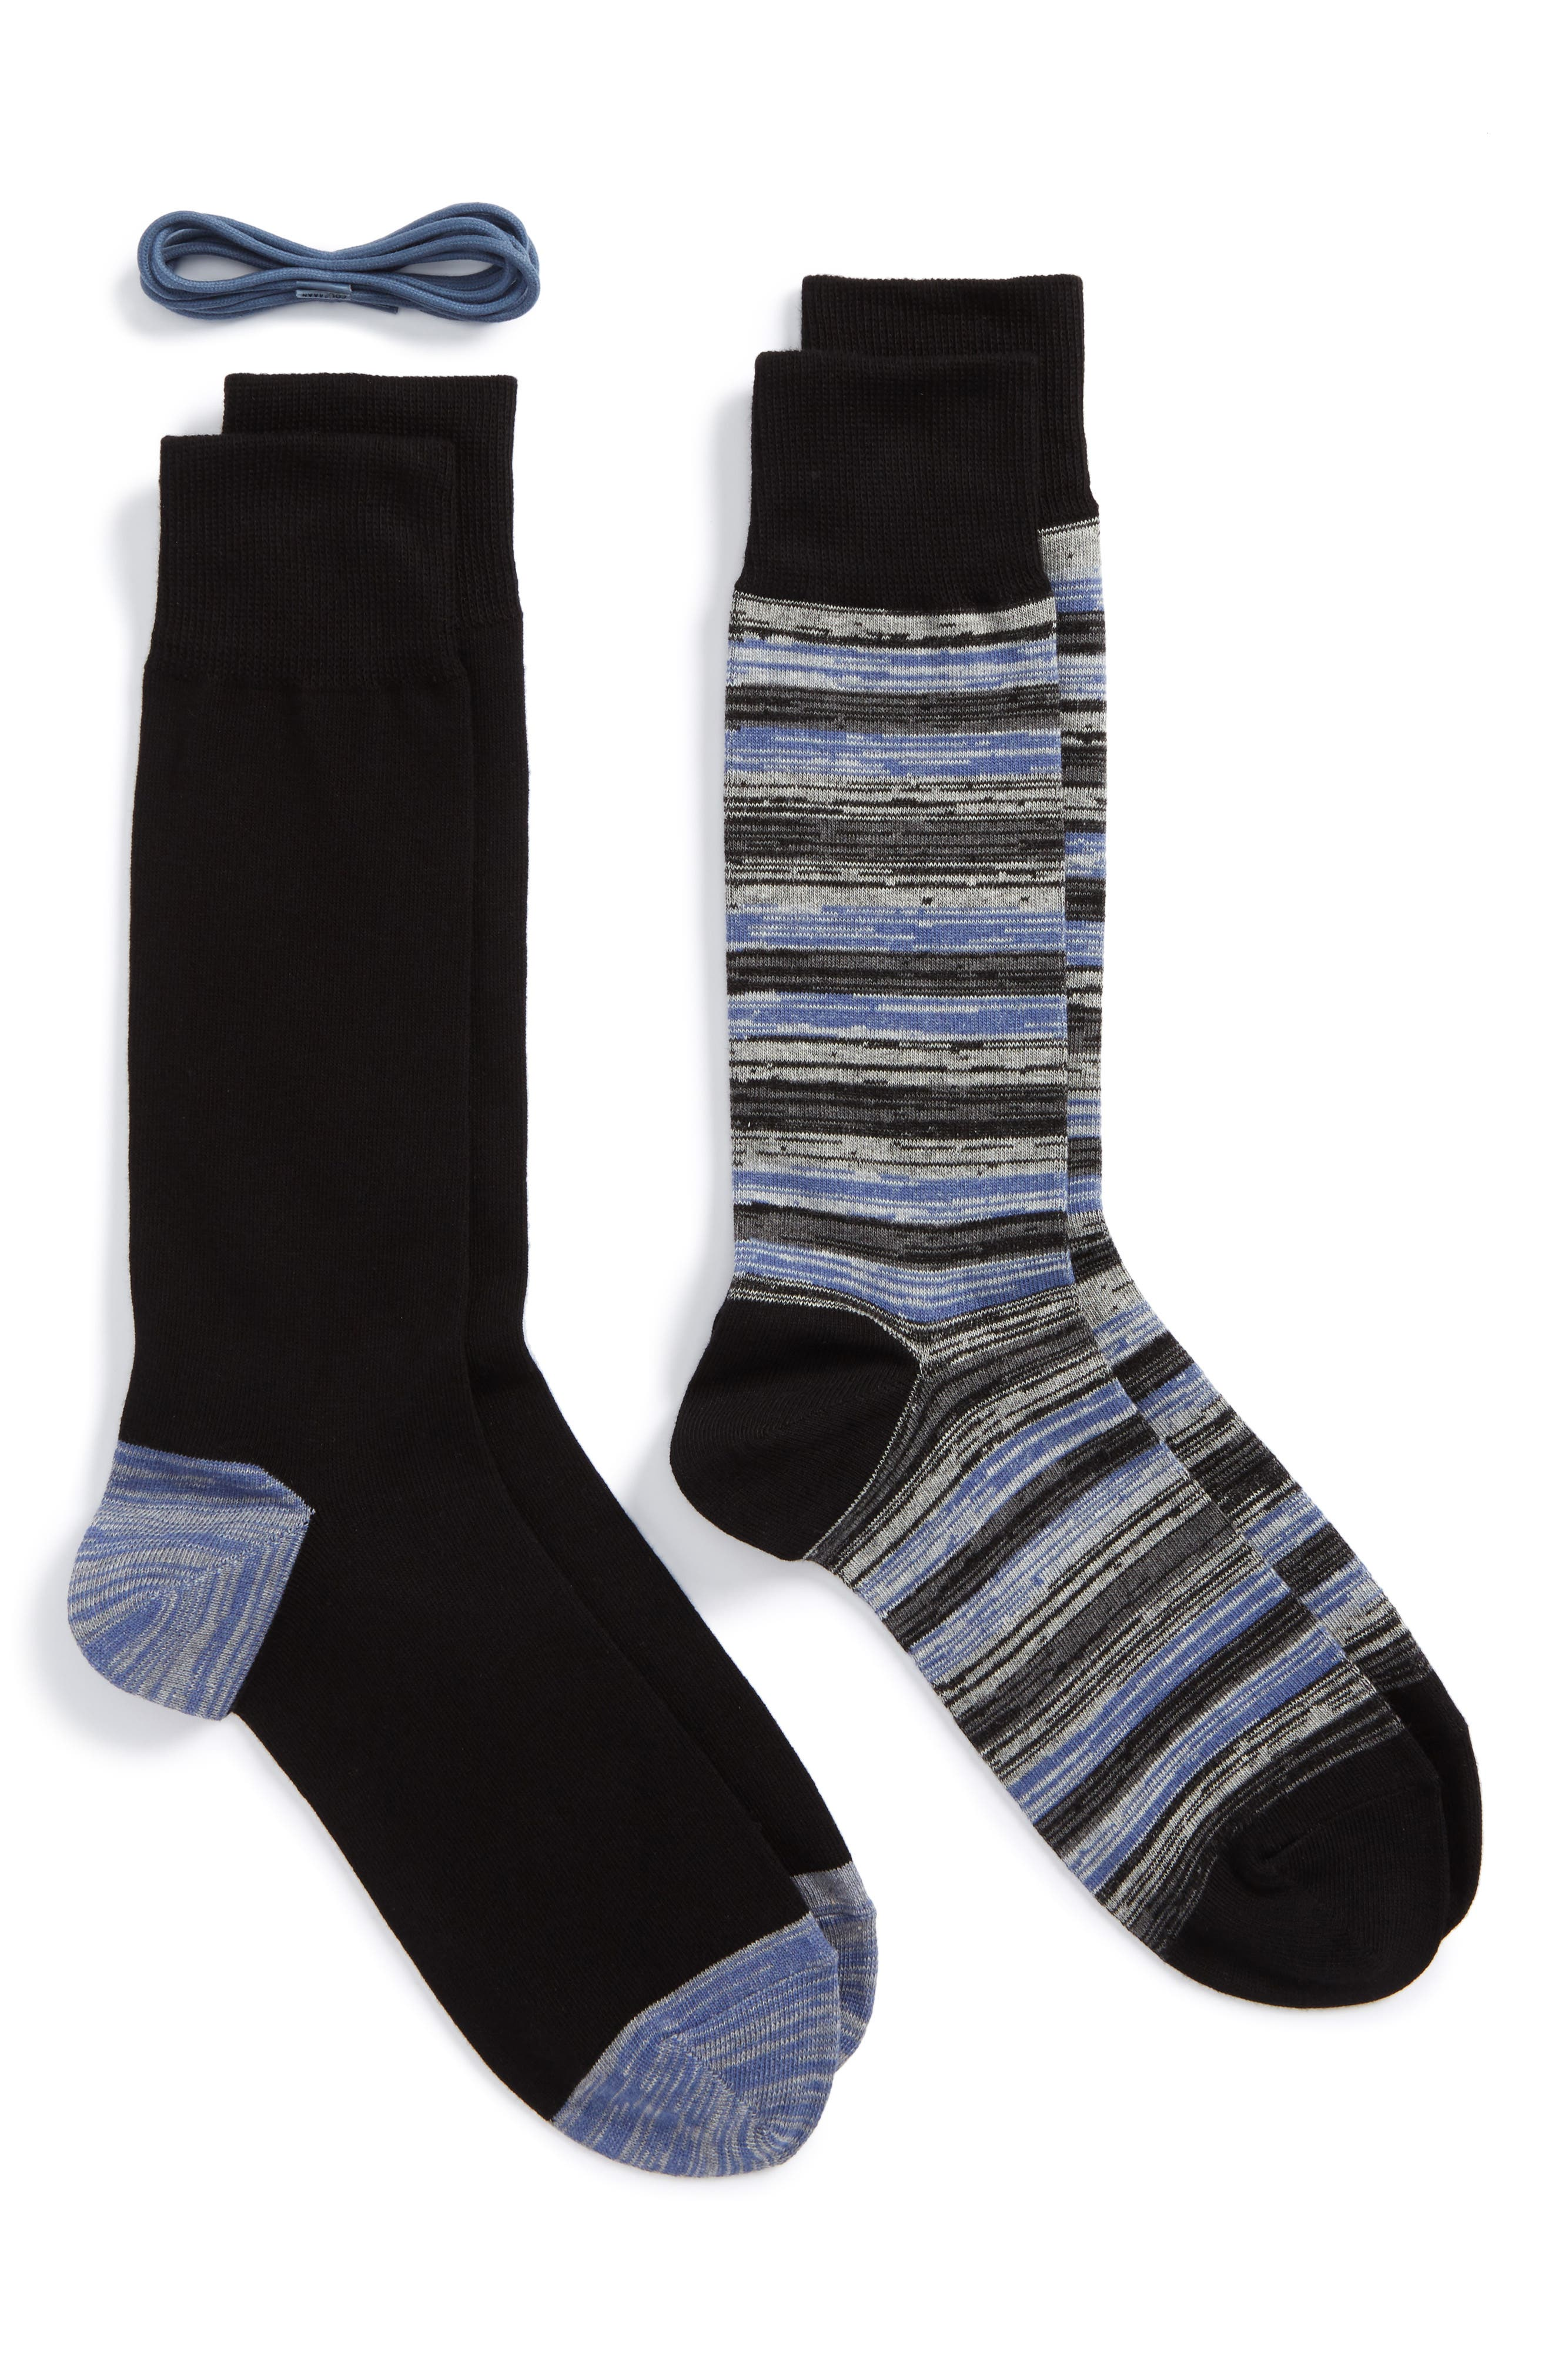 Alternate Image 1 Selected - Cole Haan 2-Pack Socks & Laces Set ($31.95 Value)